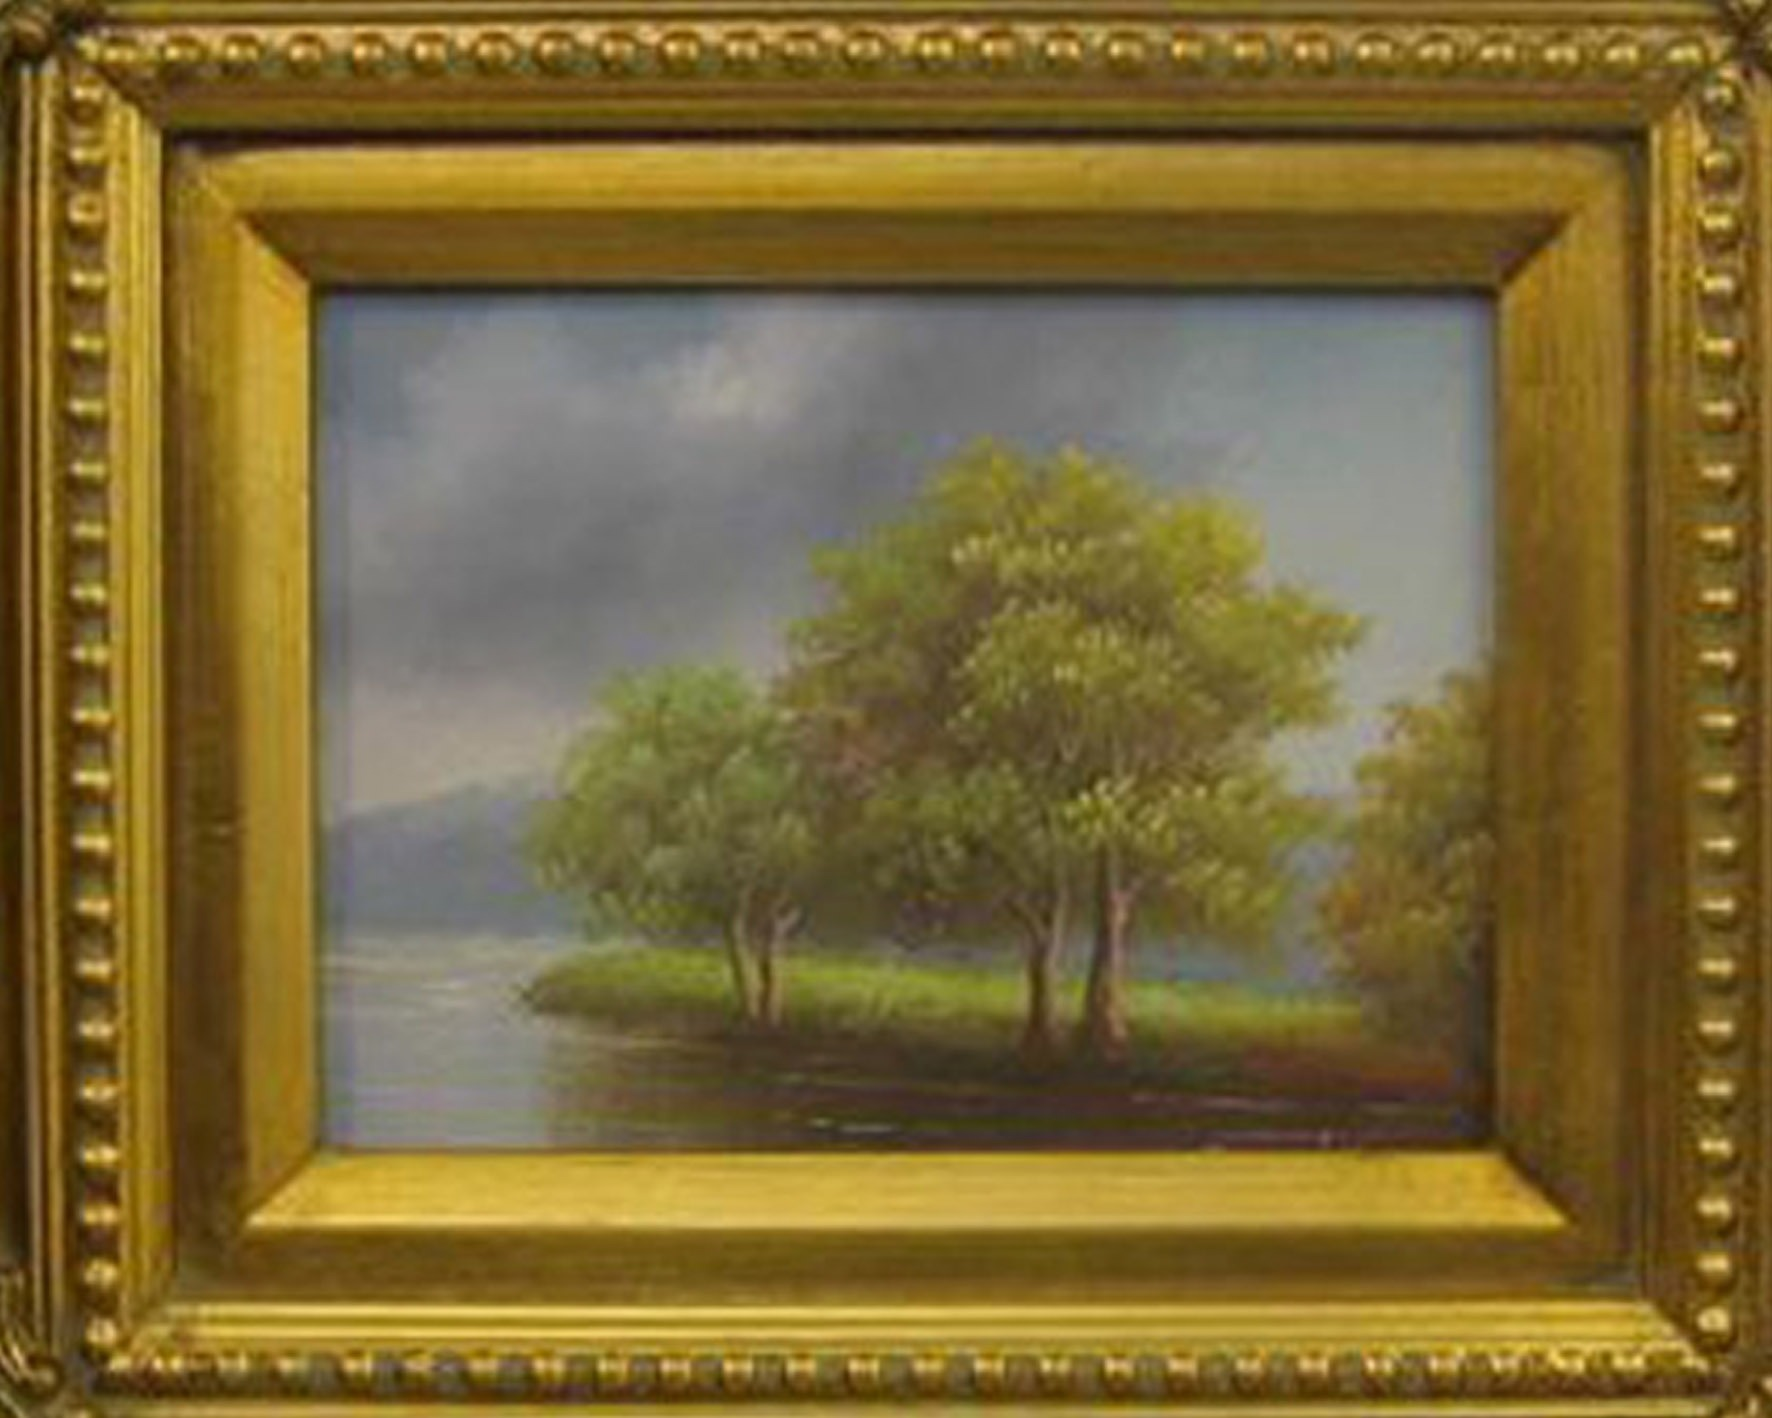 Painting on canvass 'Landscape and lake'